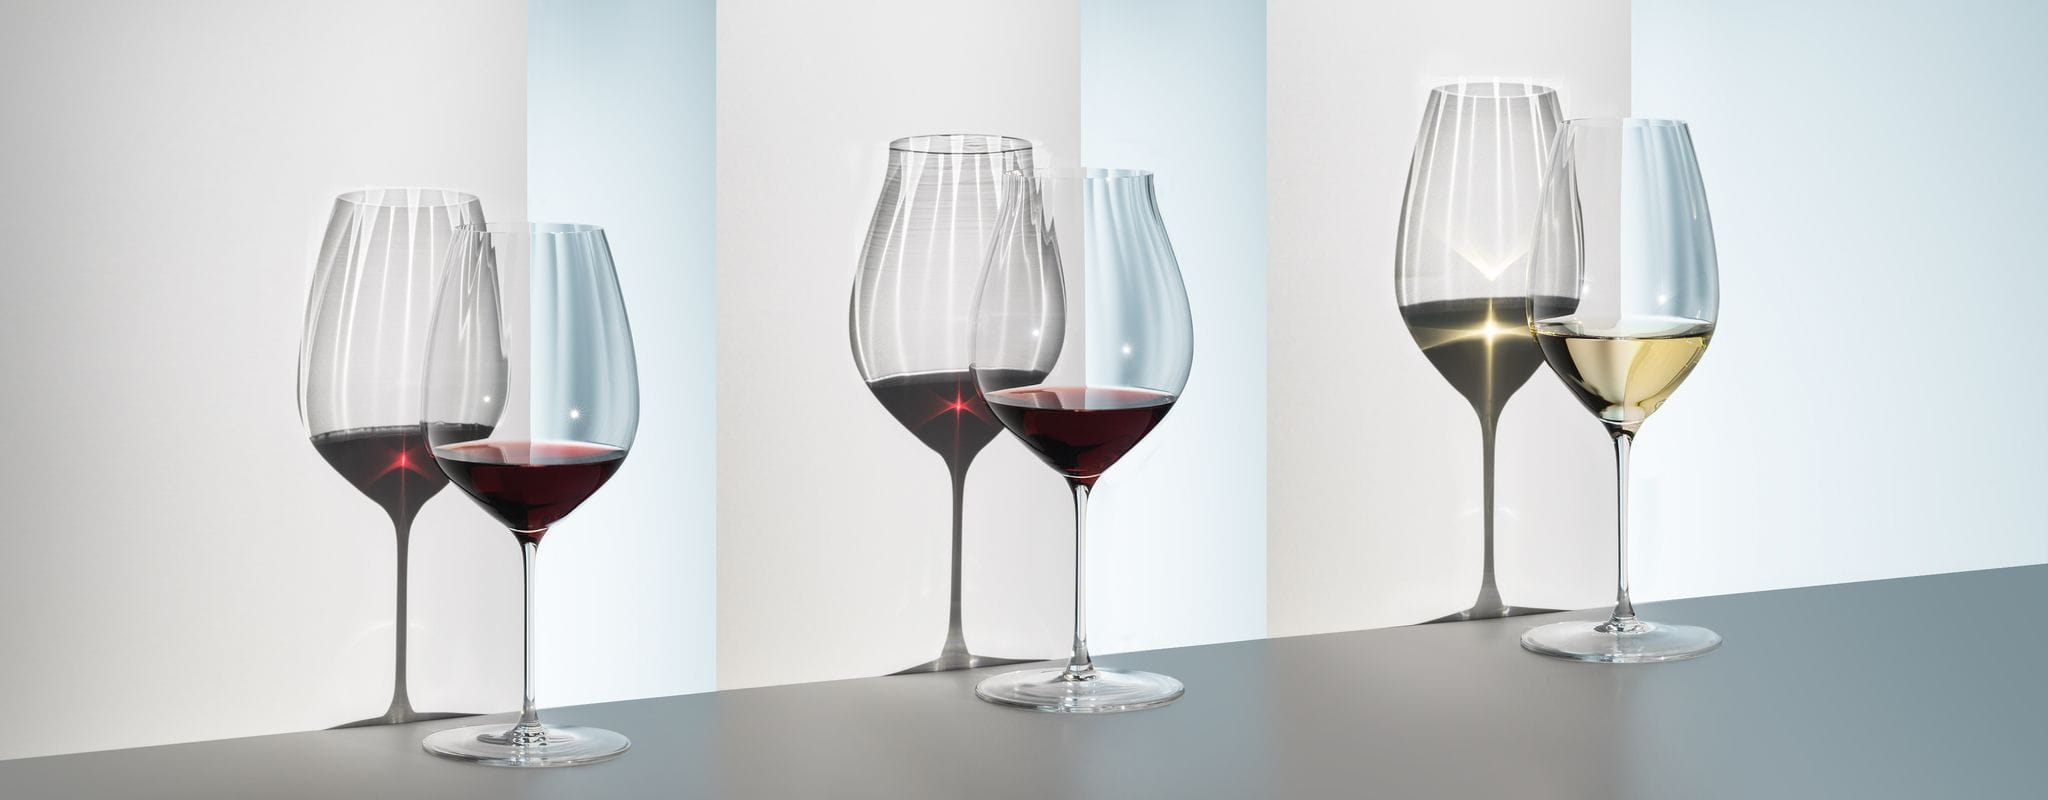 3 RIEDEL Performance Cabernet, Pinot Noir and Riesling glasses filled with wine cast shadows on a white wall, showing the structure of the bowl.